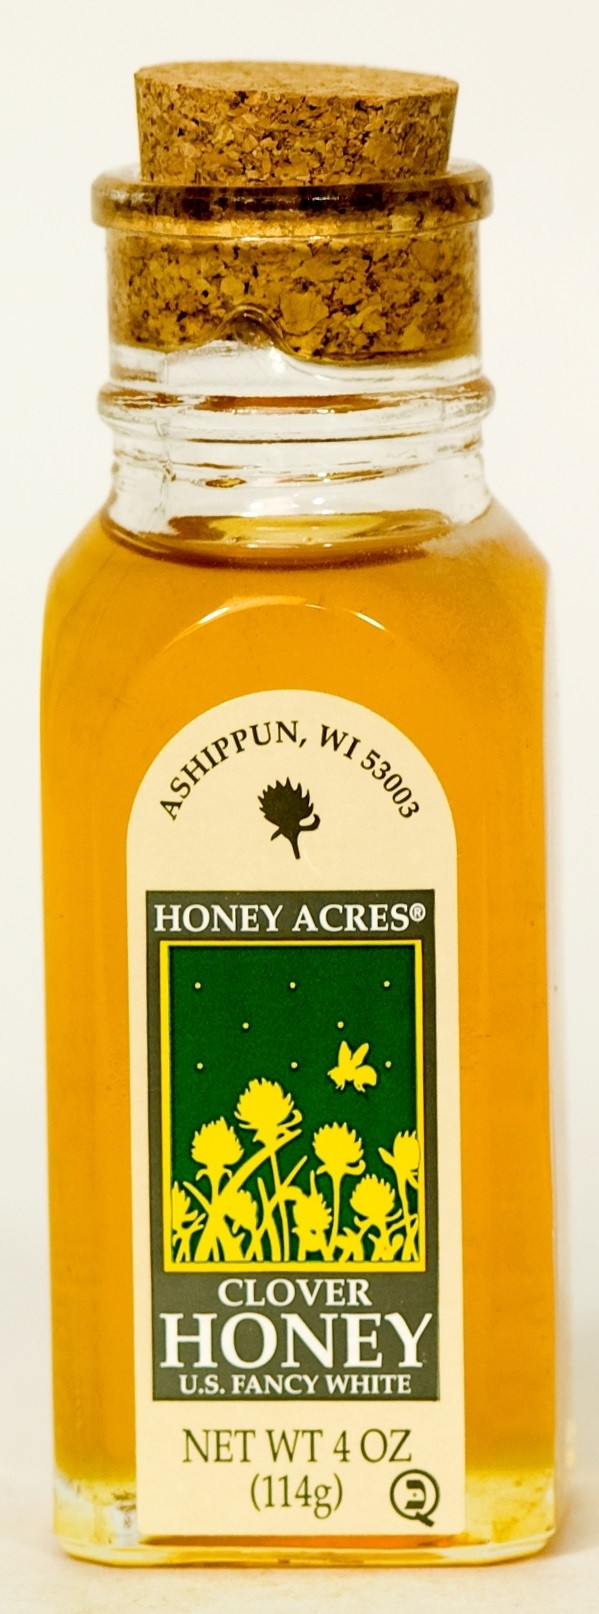 Honey Acres Artisan Honey, Pure Clover Honey, 4 Oz Muth Jar